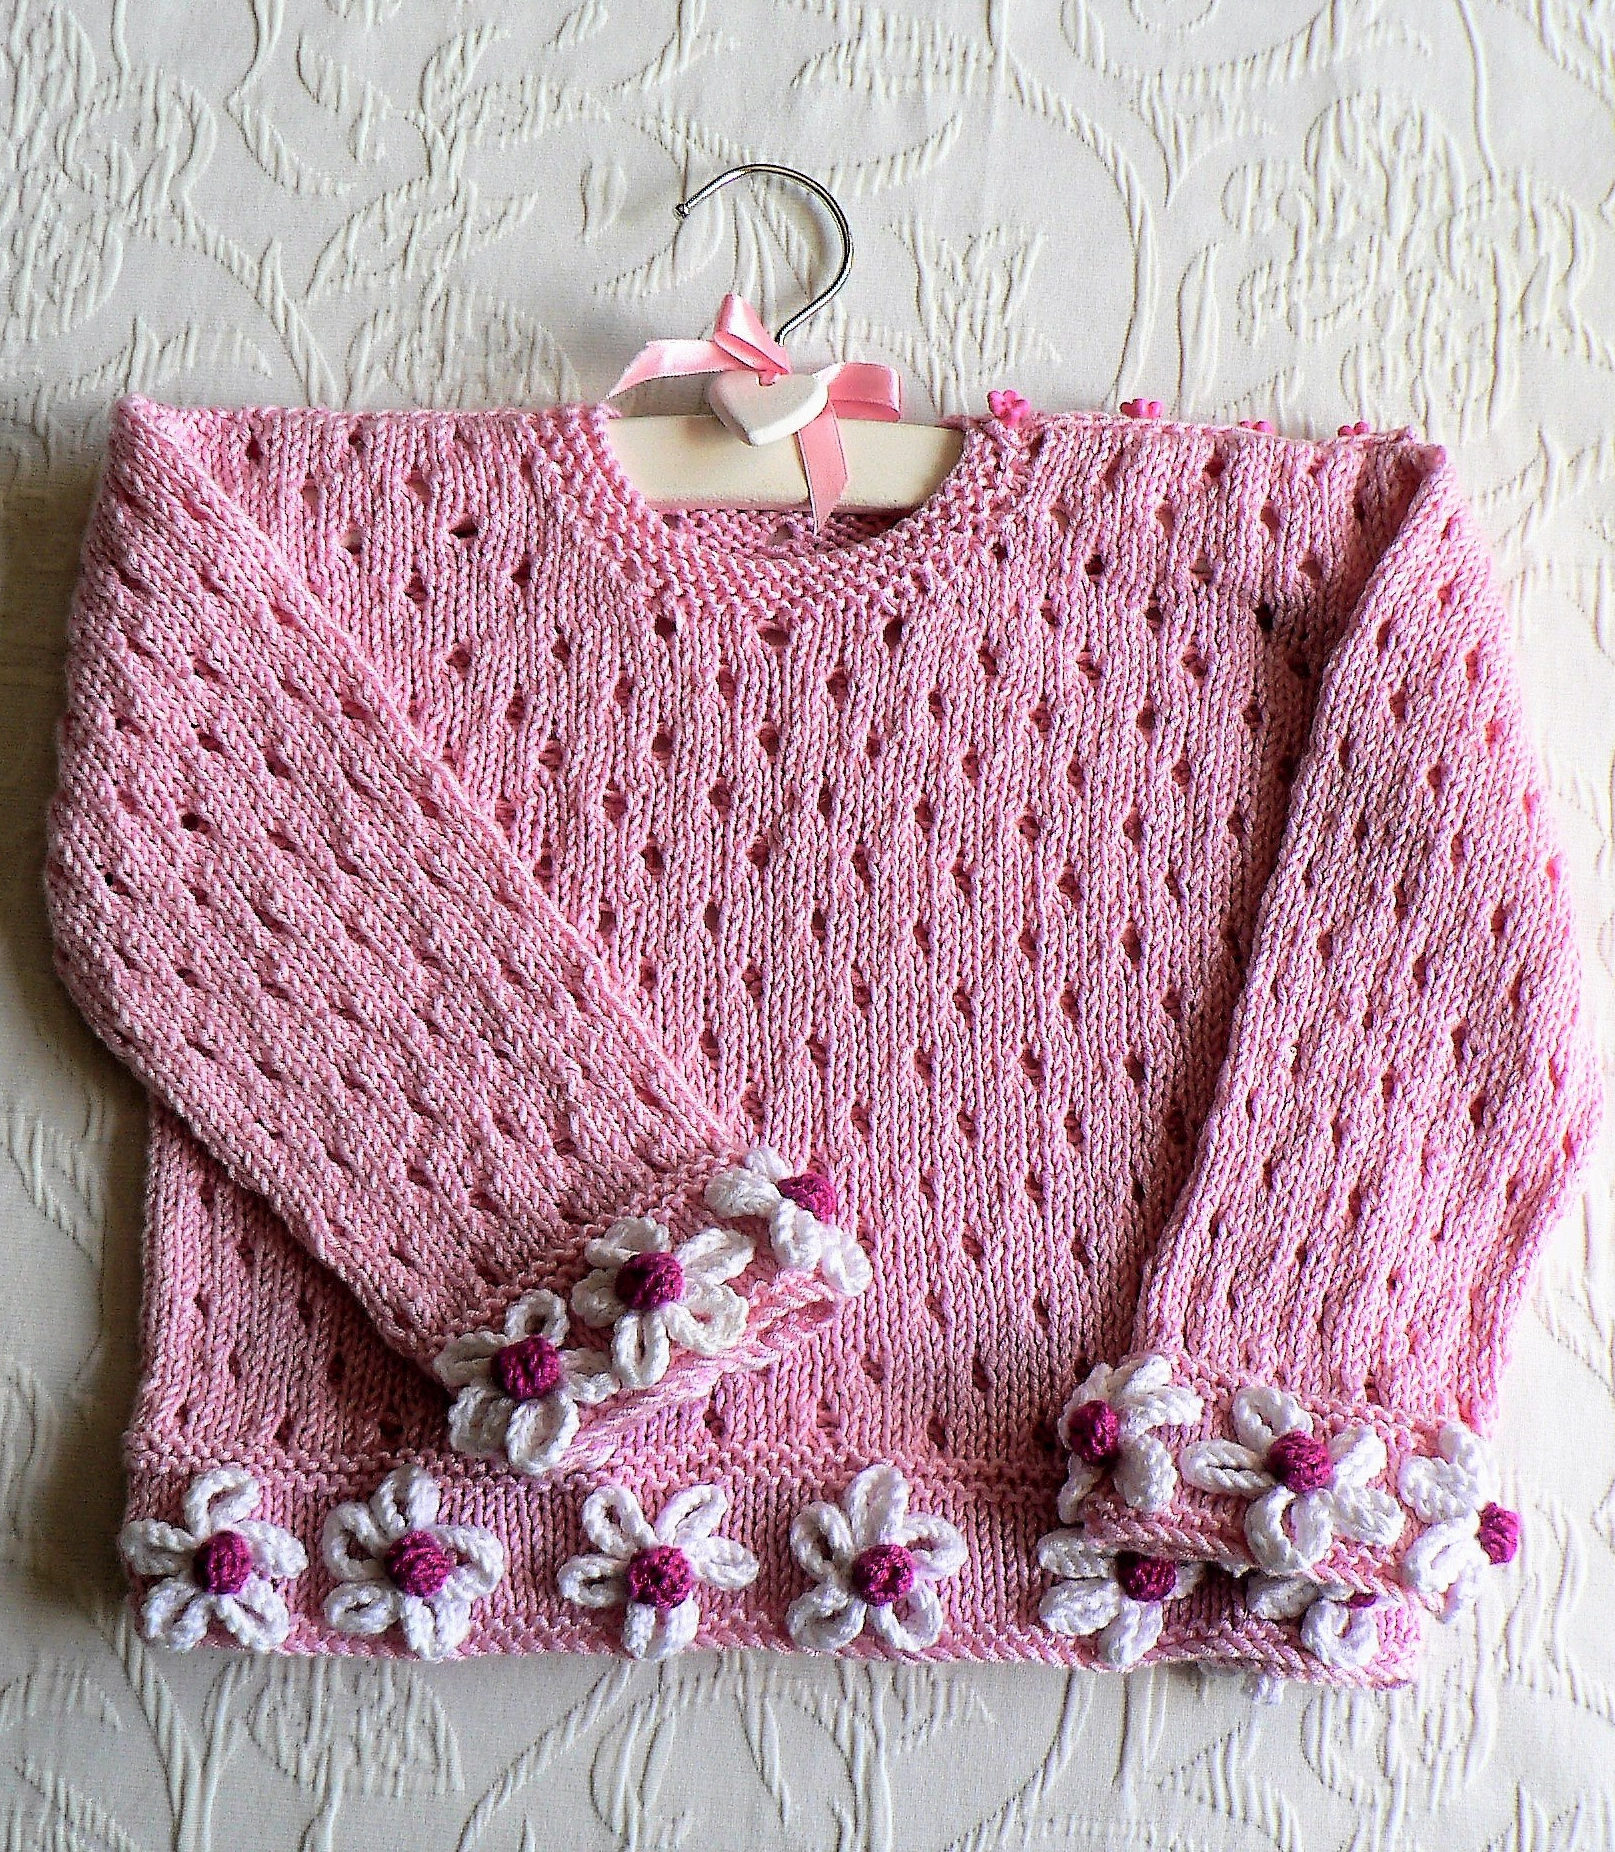 Knitting Pattern for Daisy Days Baby Sweater